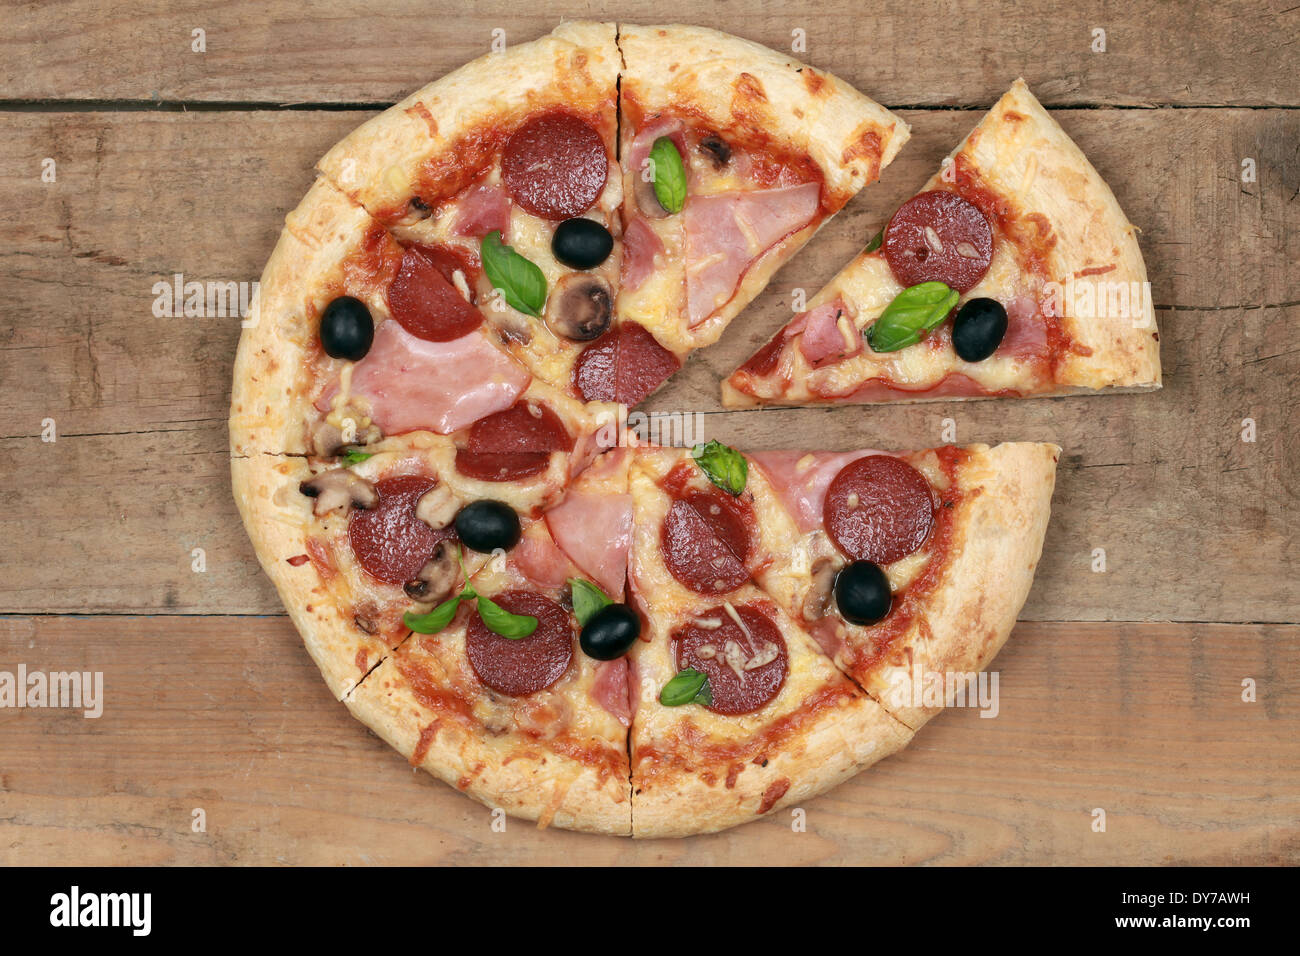 Sliced Deluxe Pizza with cheese, ham, pepperoni, mushrooms and olives on a wooden table - Stock Image